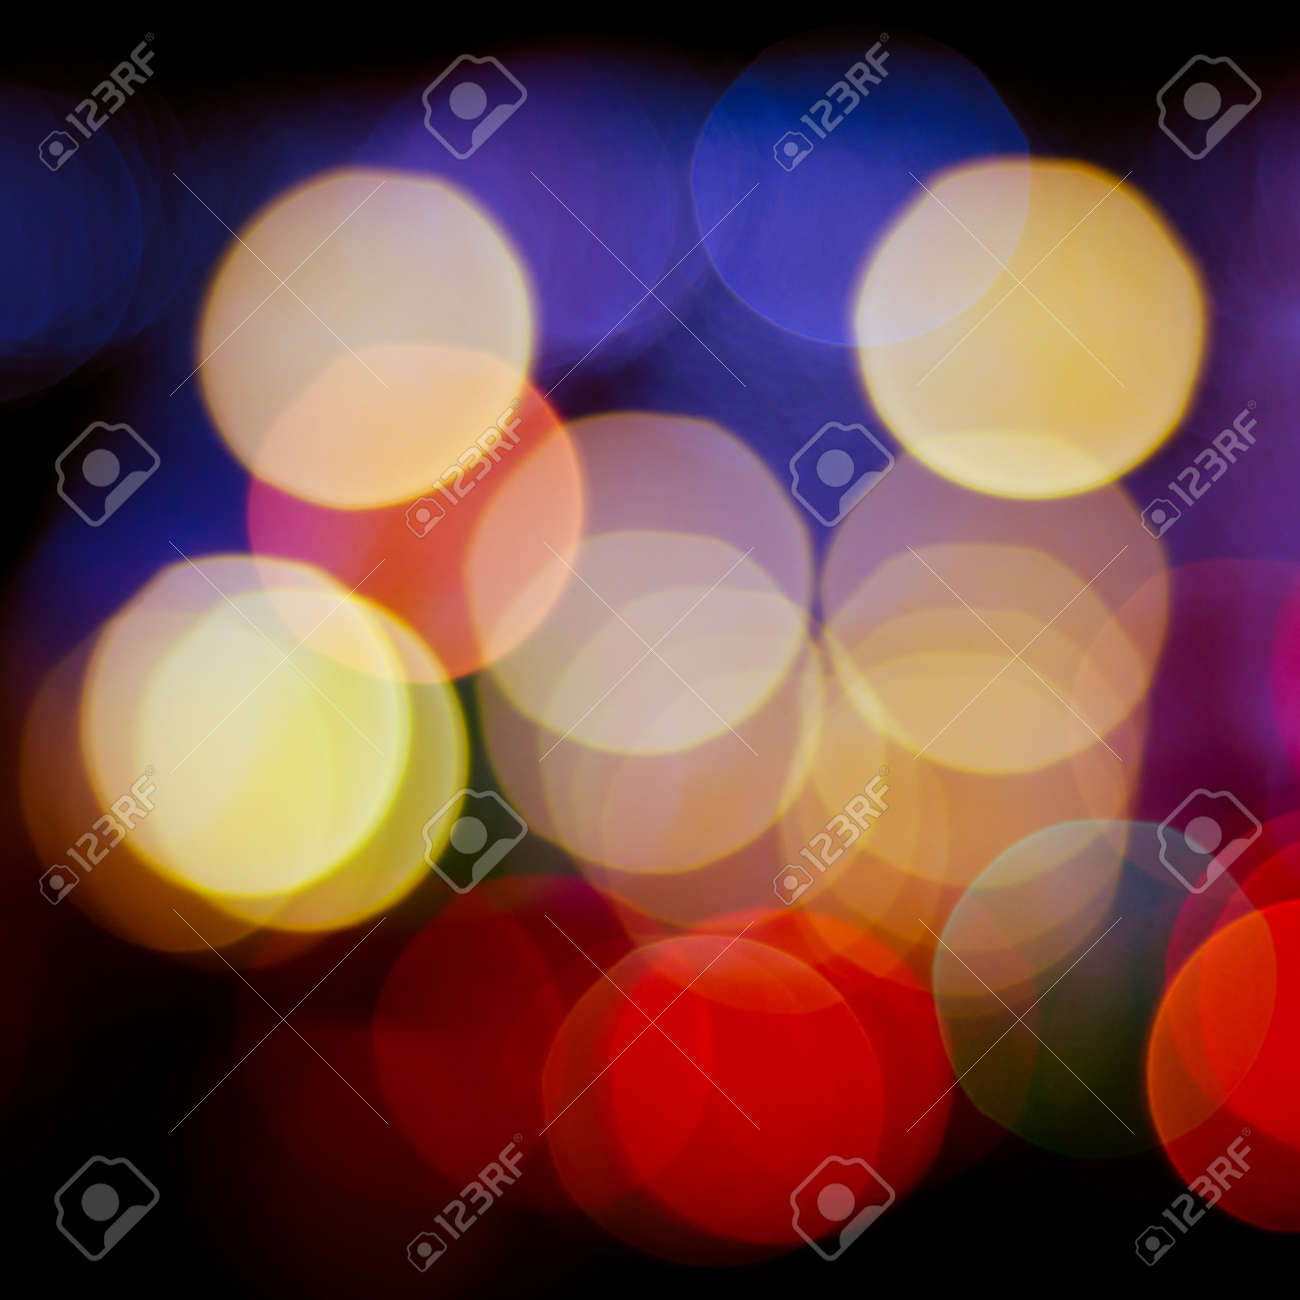 Defocused lights background of city at night. Bokeh sparkling lights. Christmas blurred lights background. Abstract colorful background. Stock Photo - 18003966